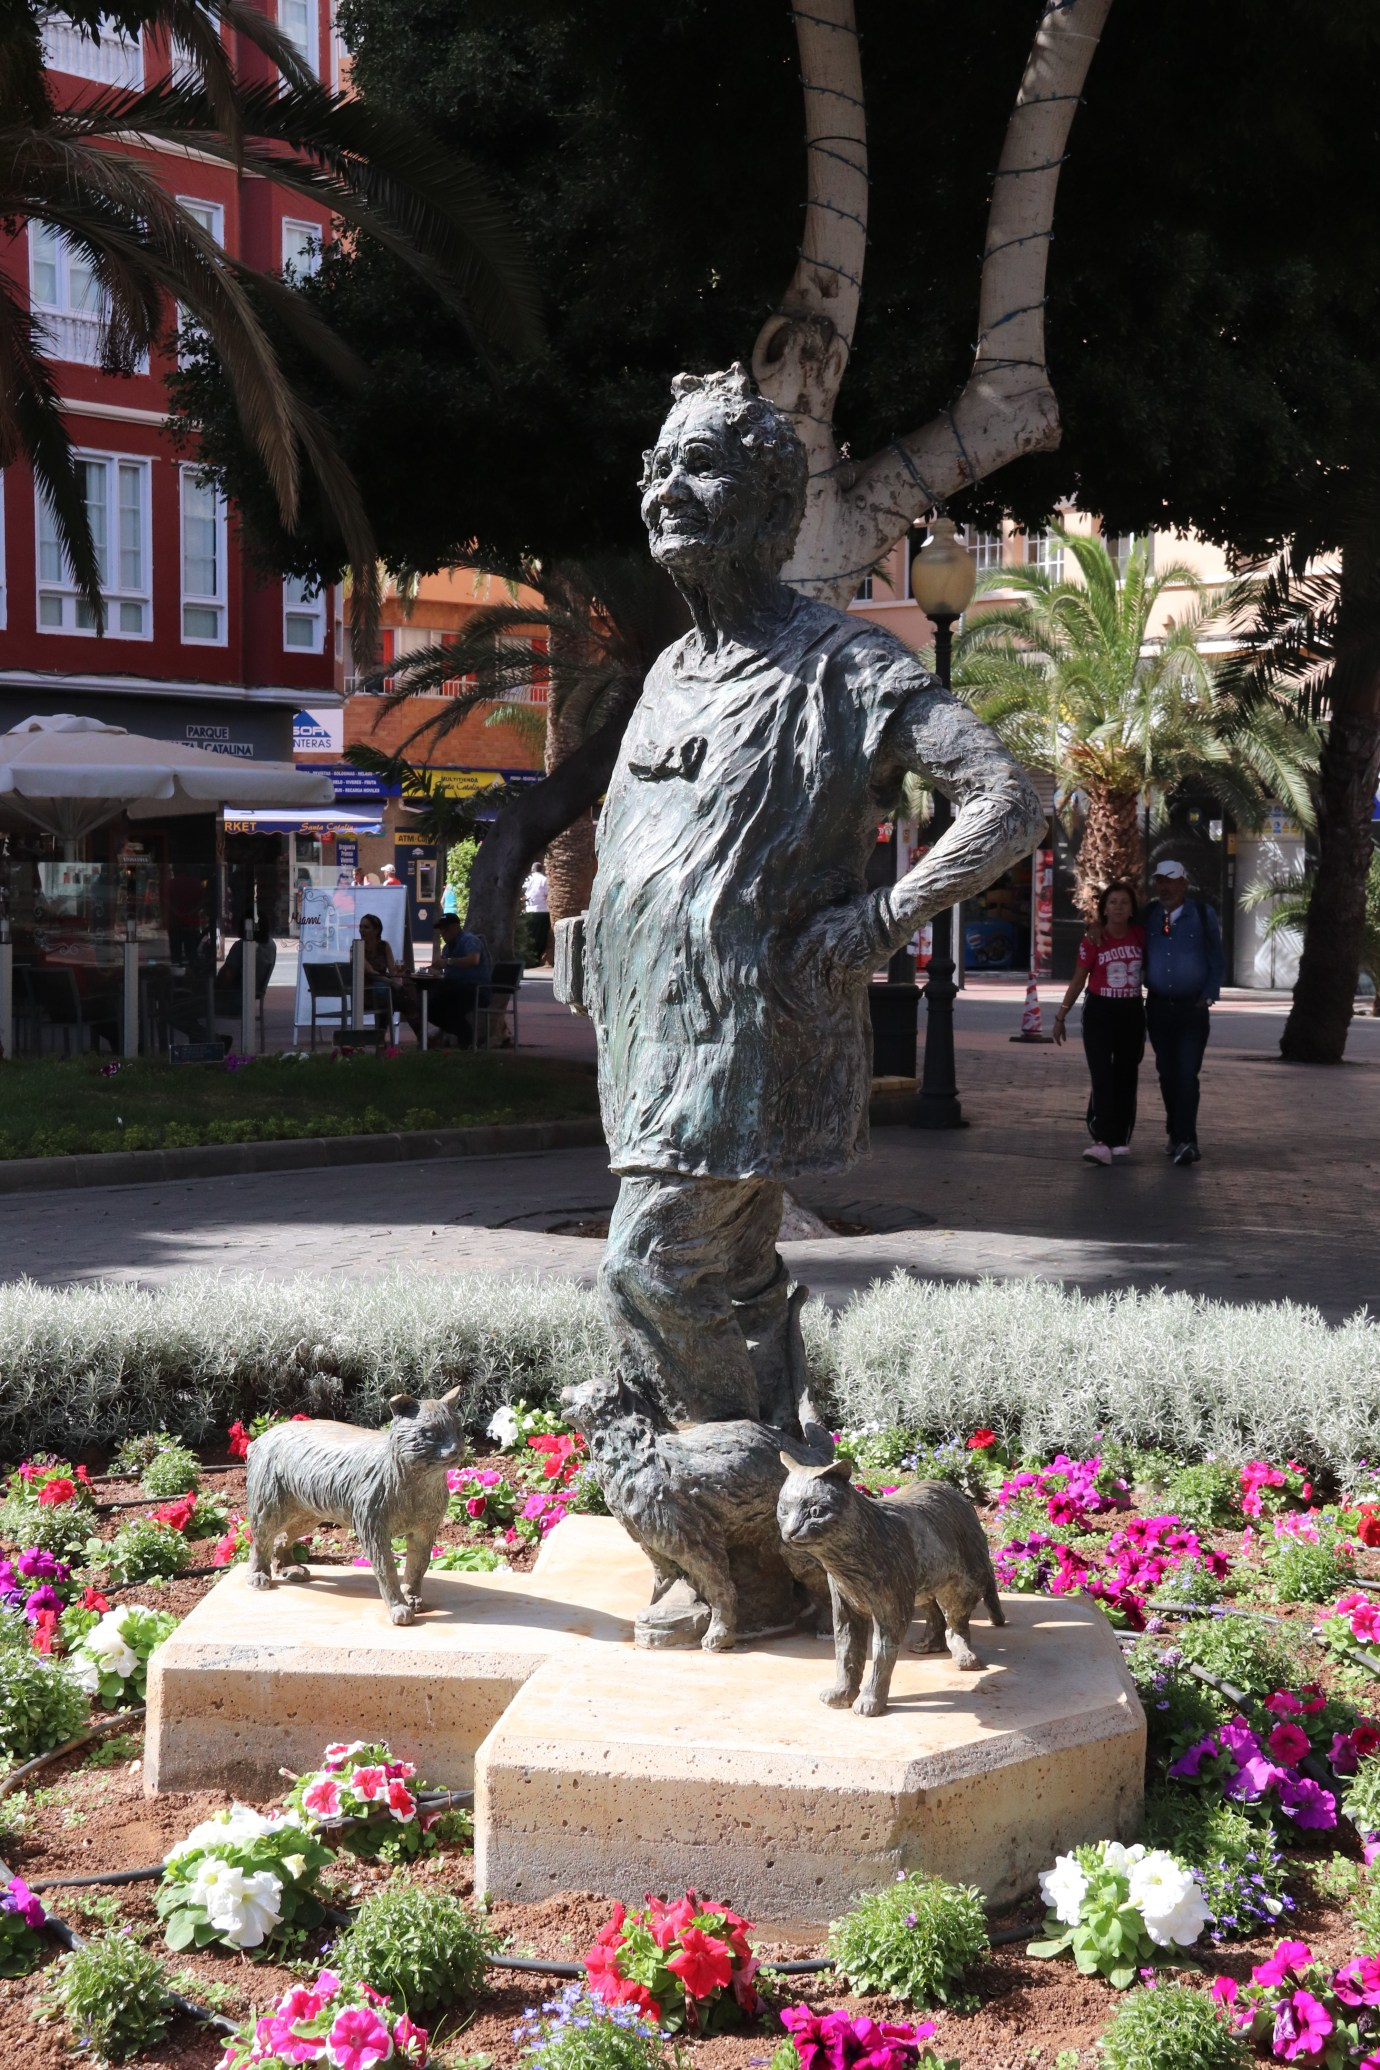 a bronze statue of Lolita Plume, an old lady surrounded by cats.